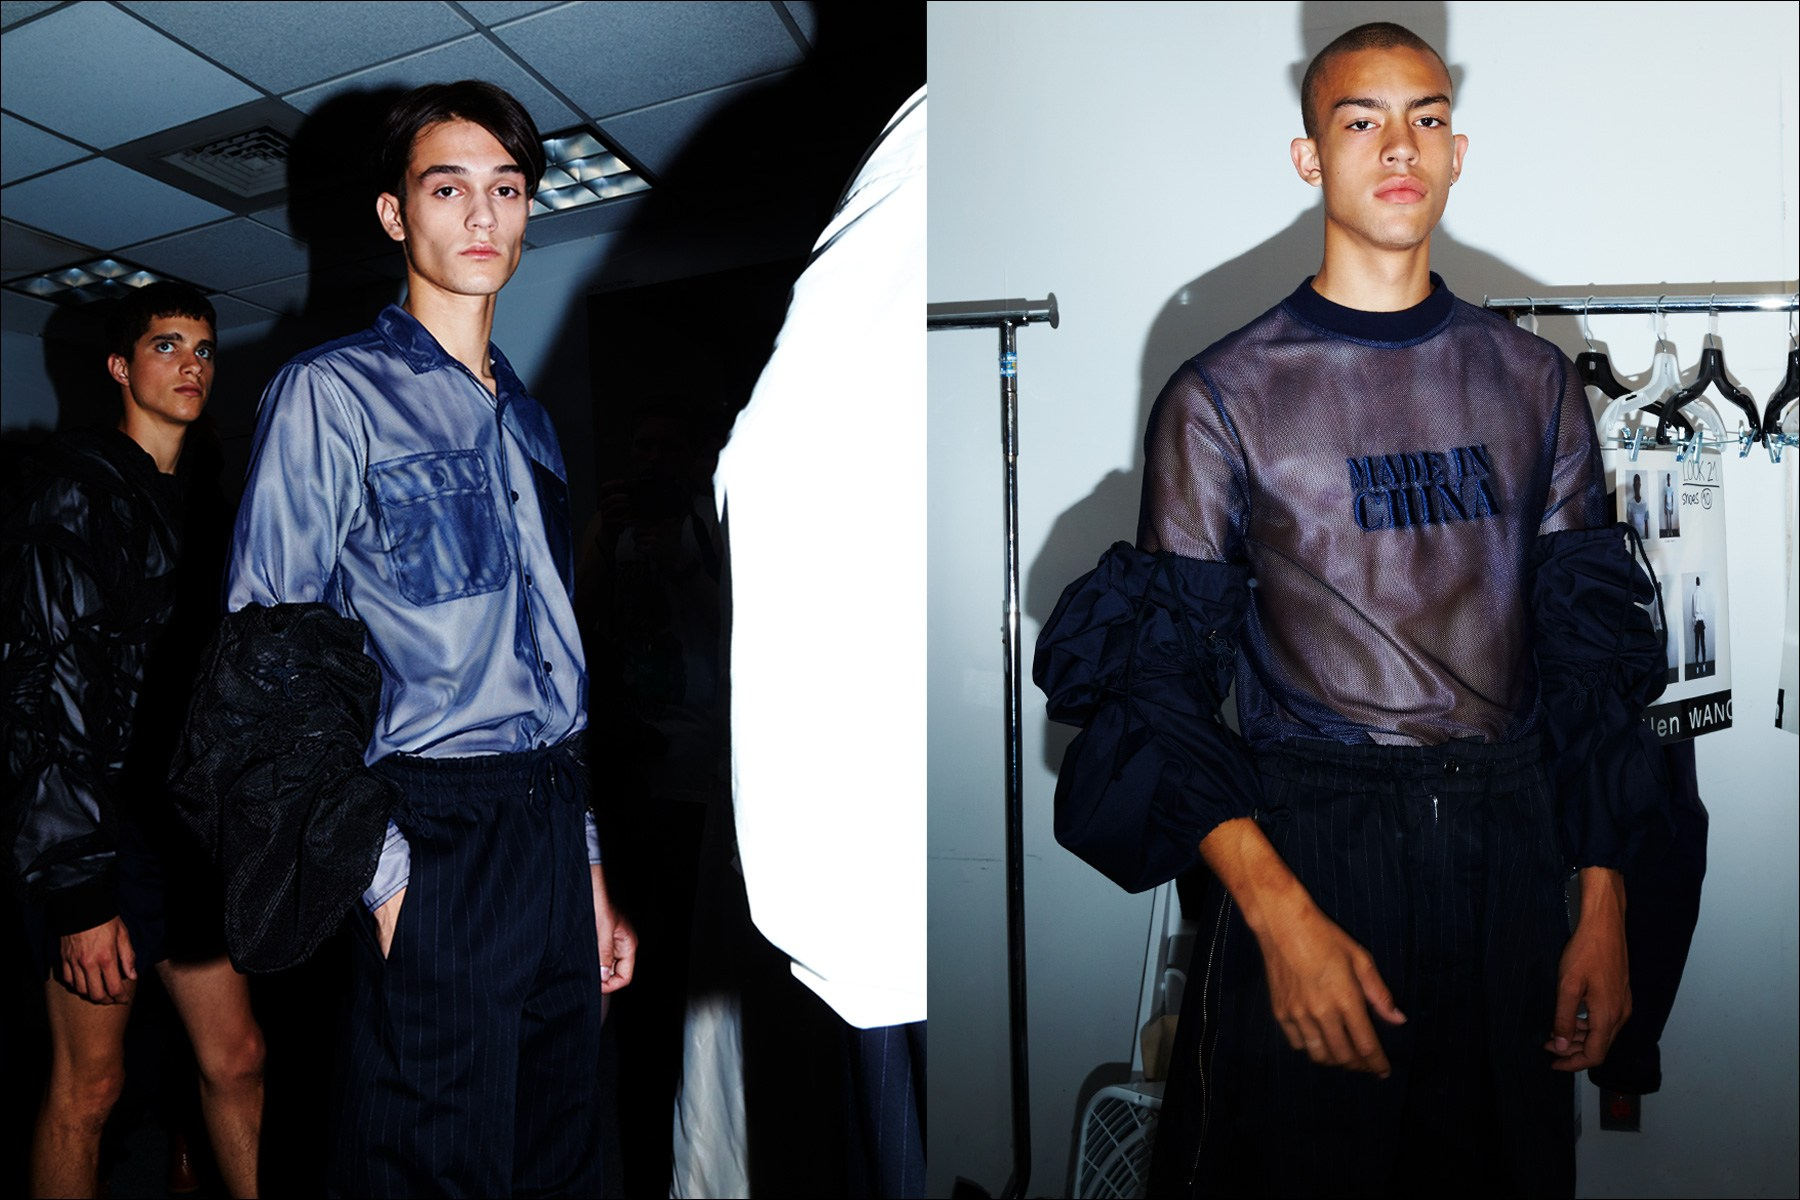 Cutting edge clothing, backstage at Feng Chen Wang menswear. S/S18. Photography by Alexander Thompson for Ponyboy magazine NY.